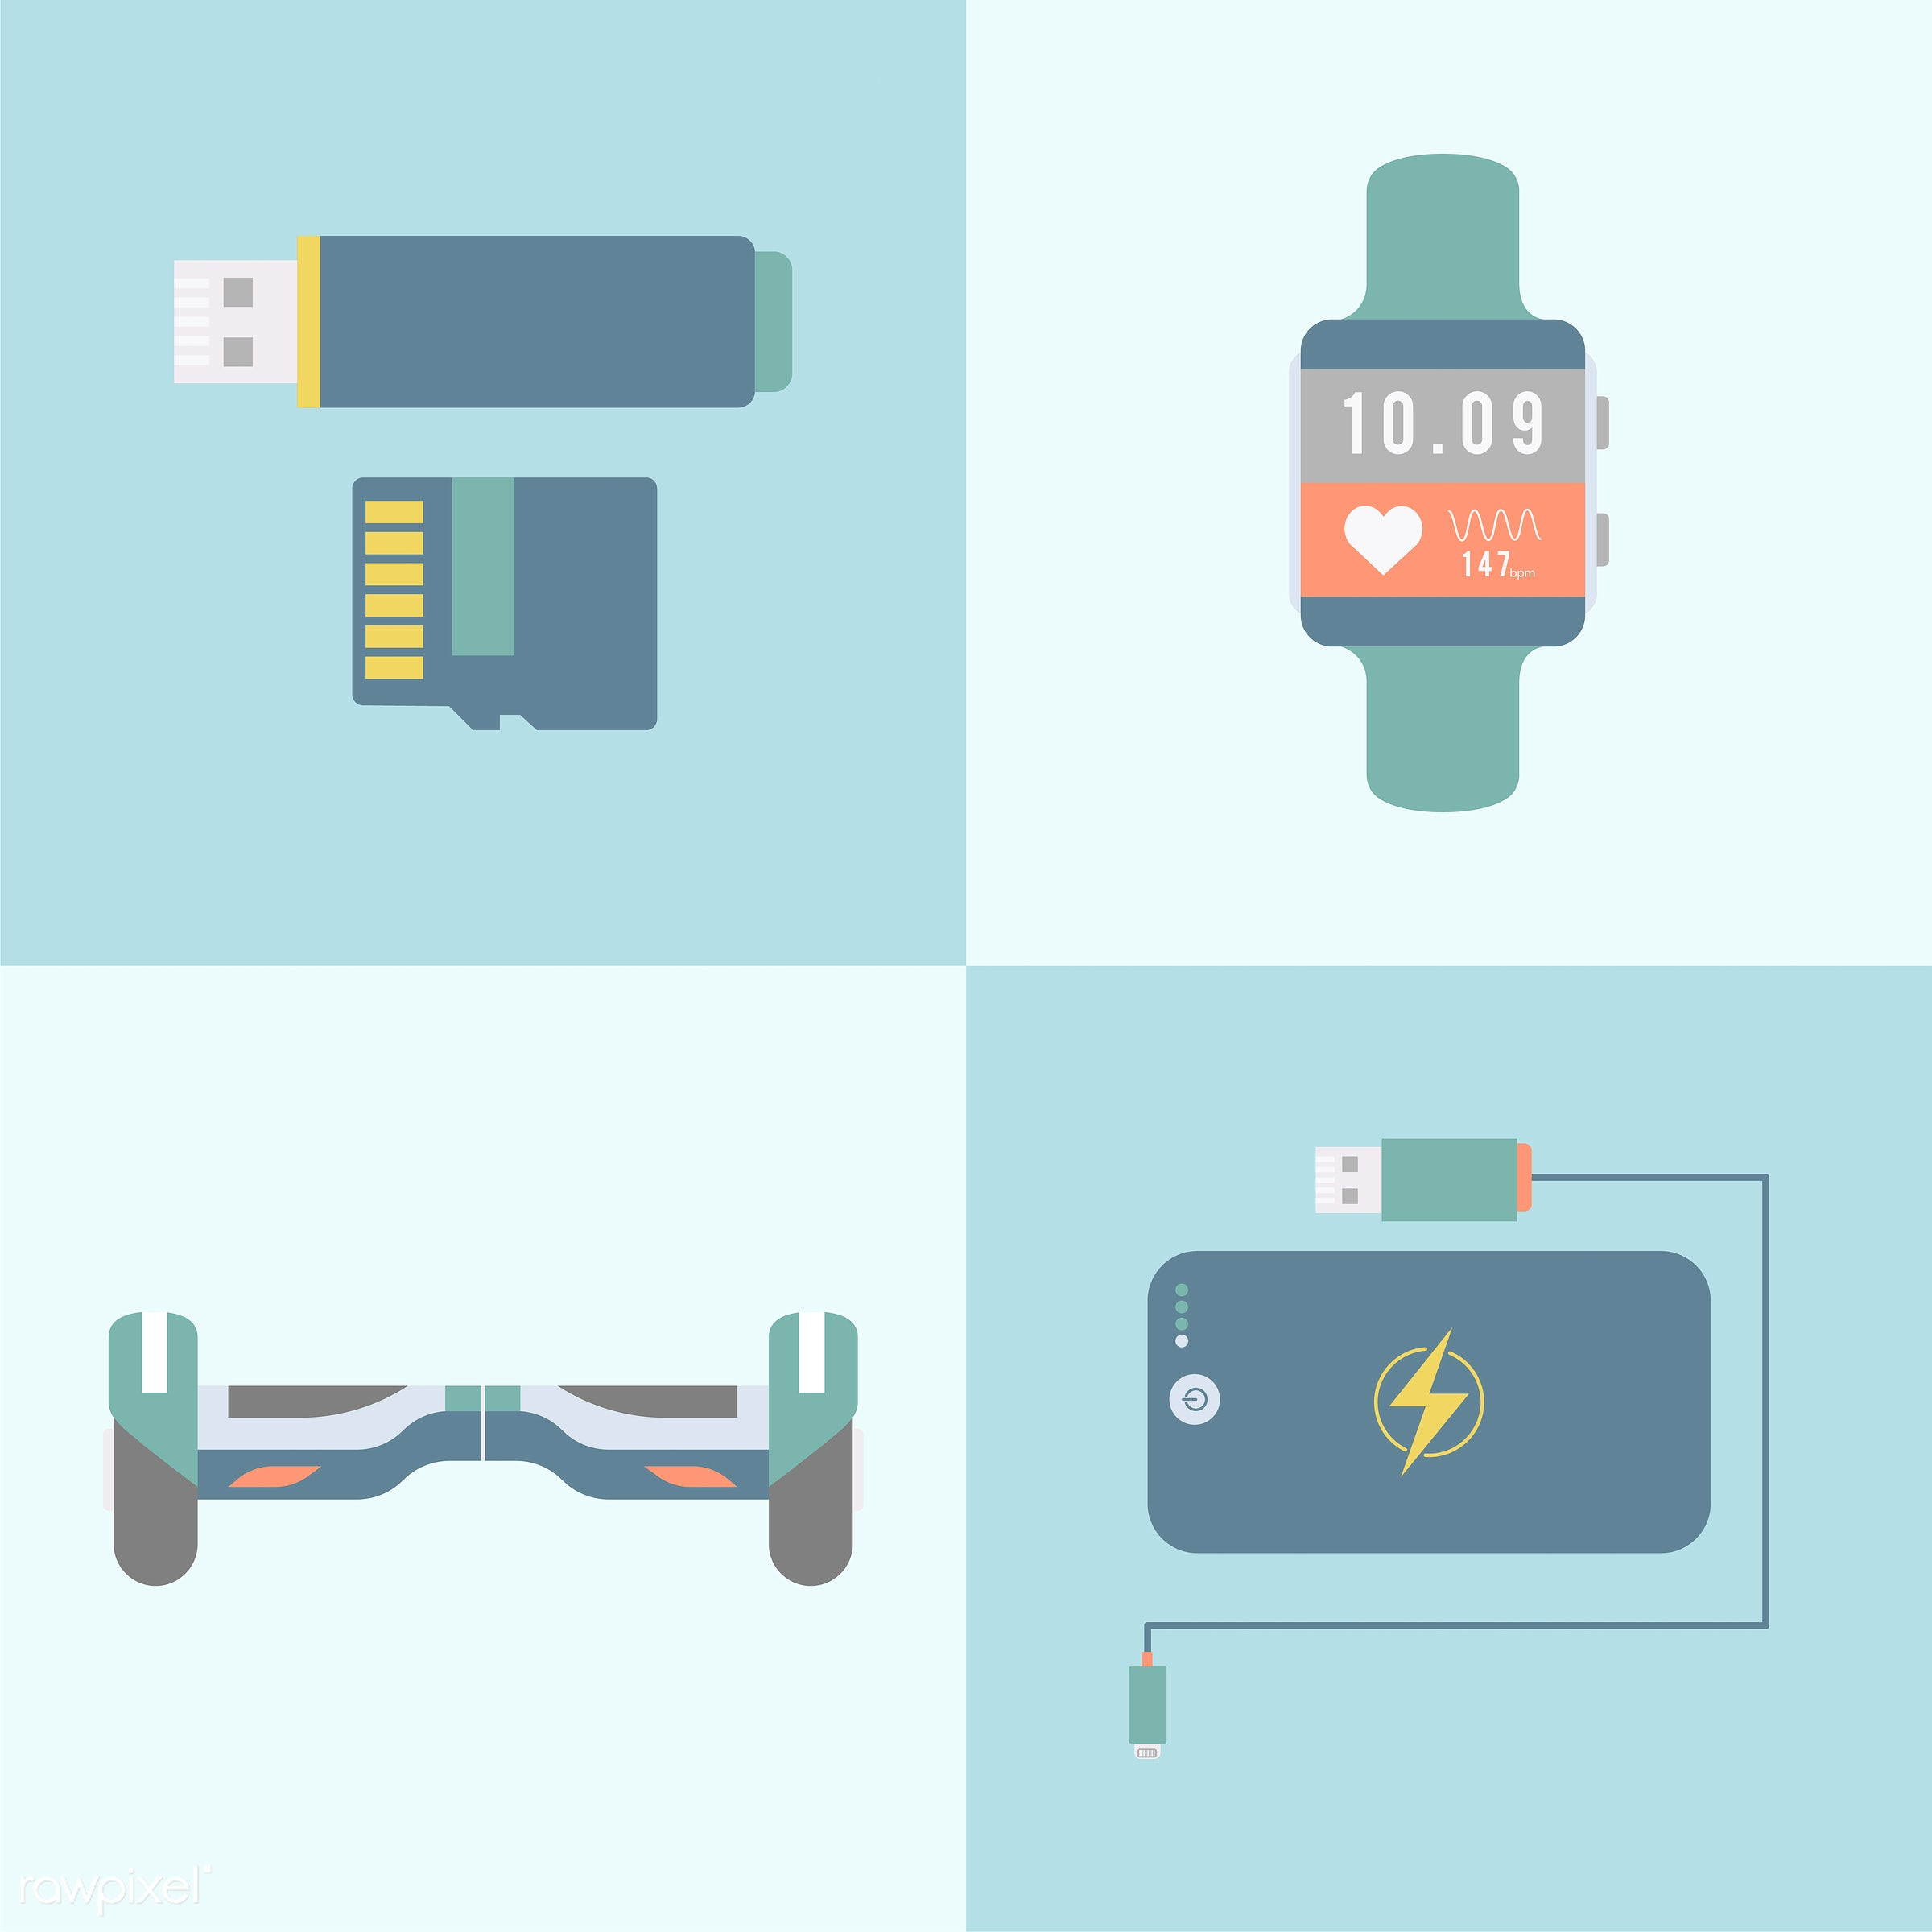 app, apps, blue, collection, connection, device, digital, digital device, gadget, graphic, heart rate monitor, illustration...